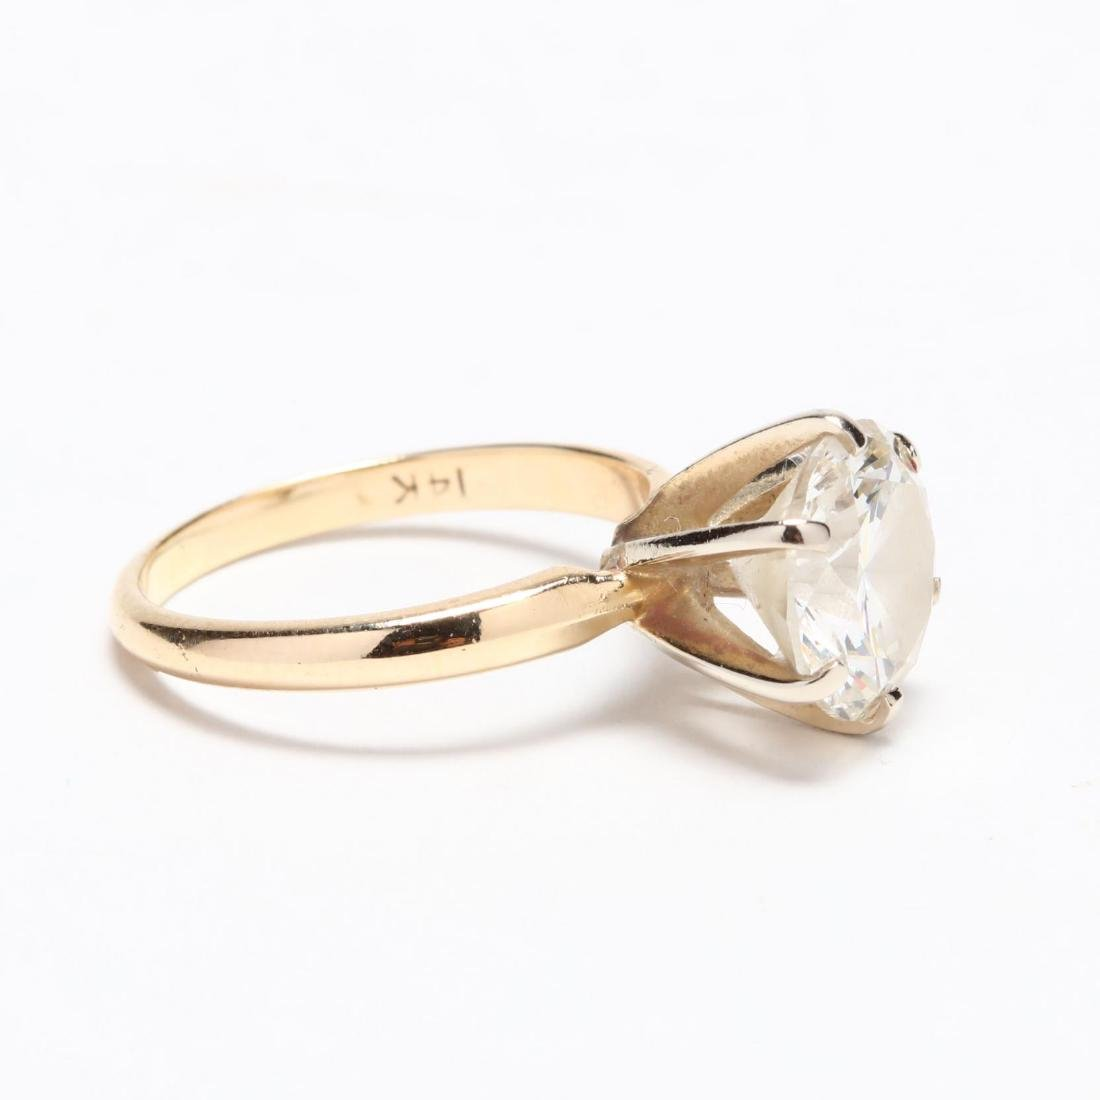 Unmounted Round Brilliant Cut Diamond and 14KT Gold - 5